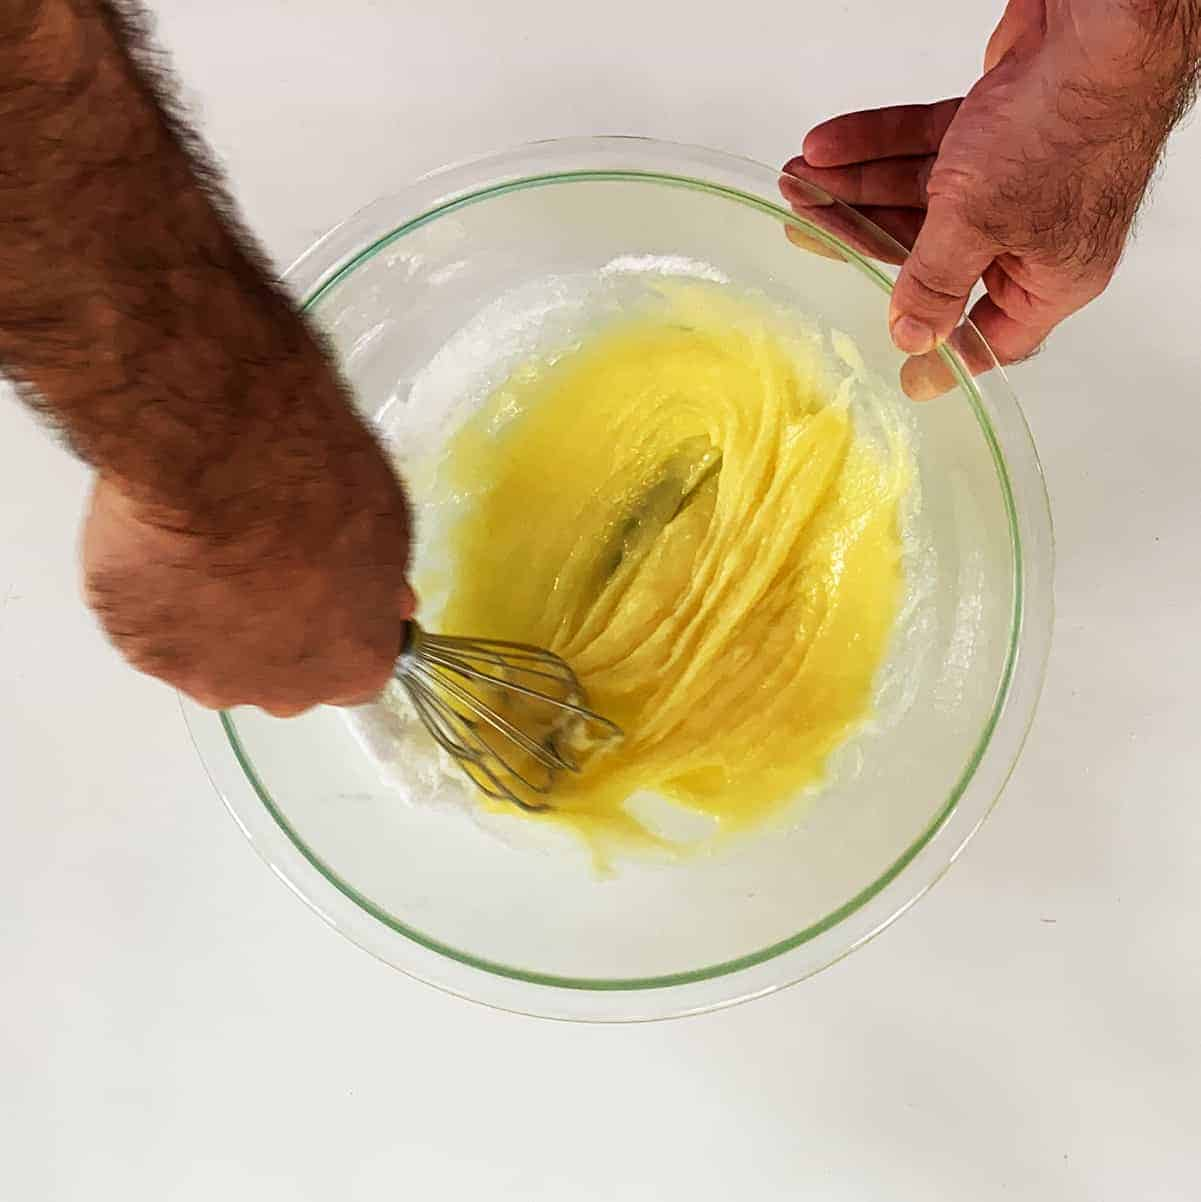 Mixing egg, sugar, and vanilla together in a large glass bowl with a beater.